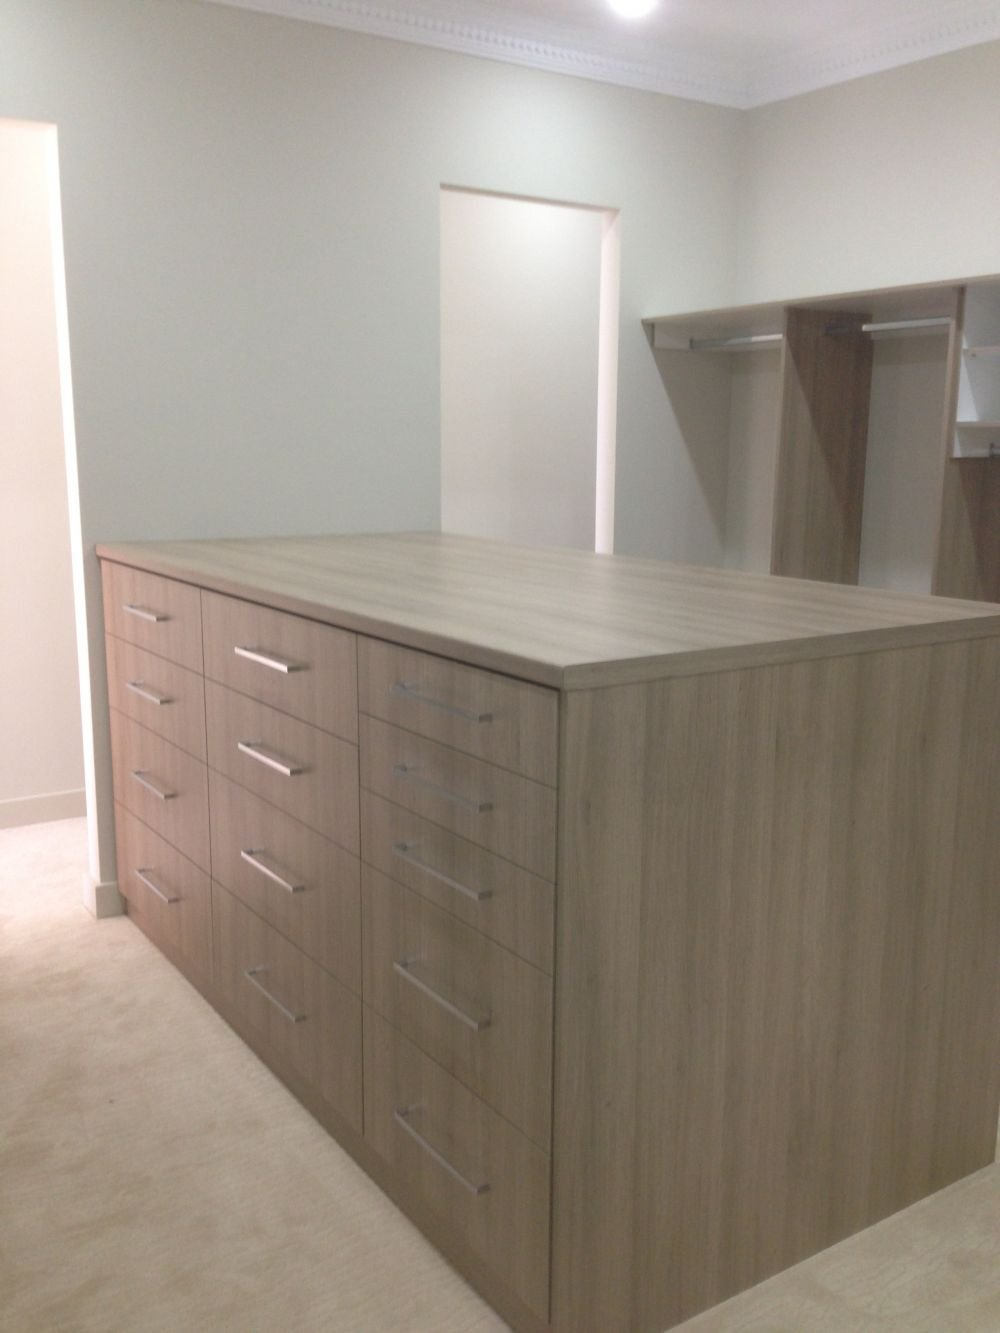 another angle of the island dresser in walk in wardrobe